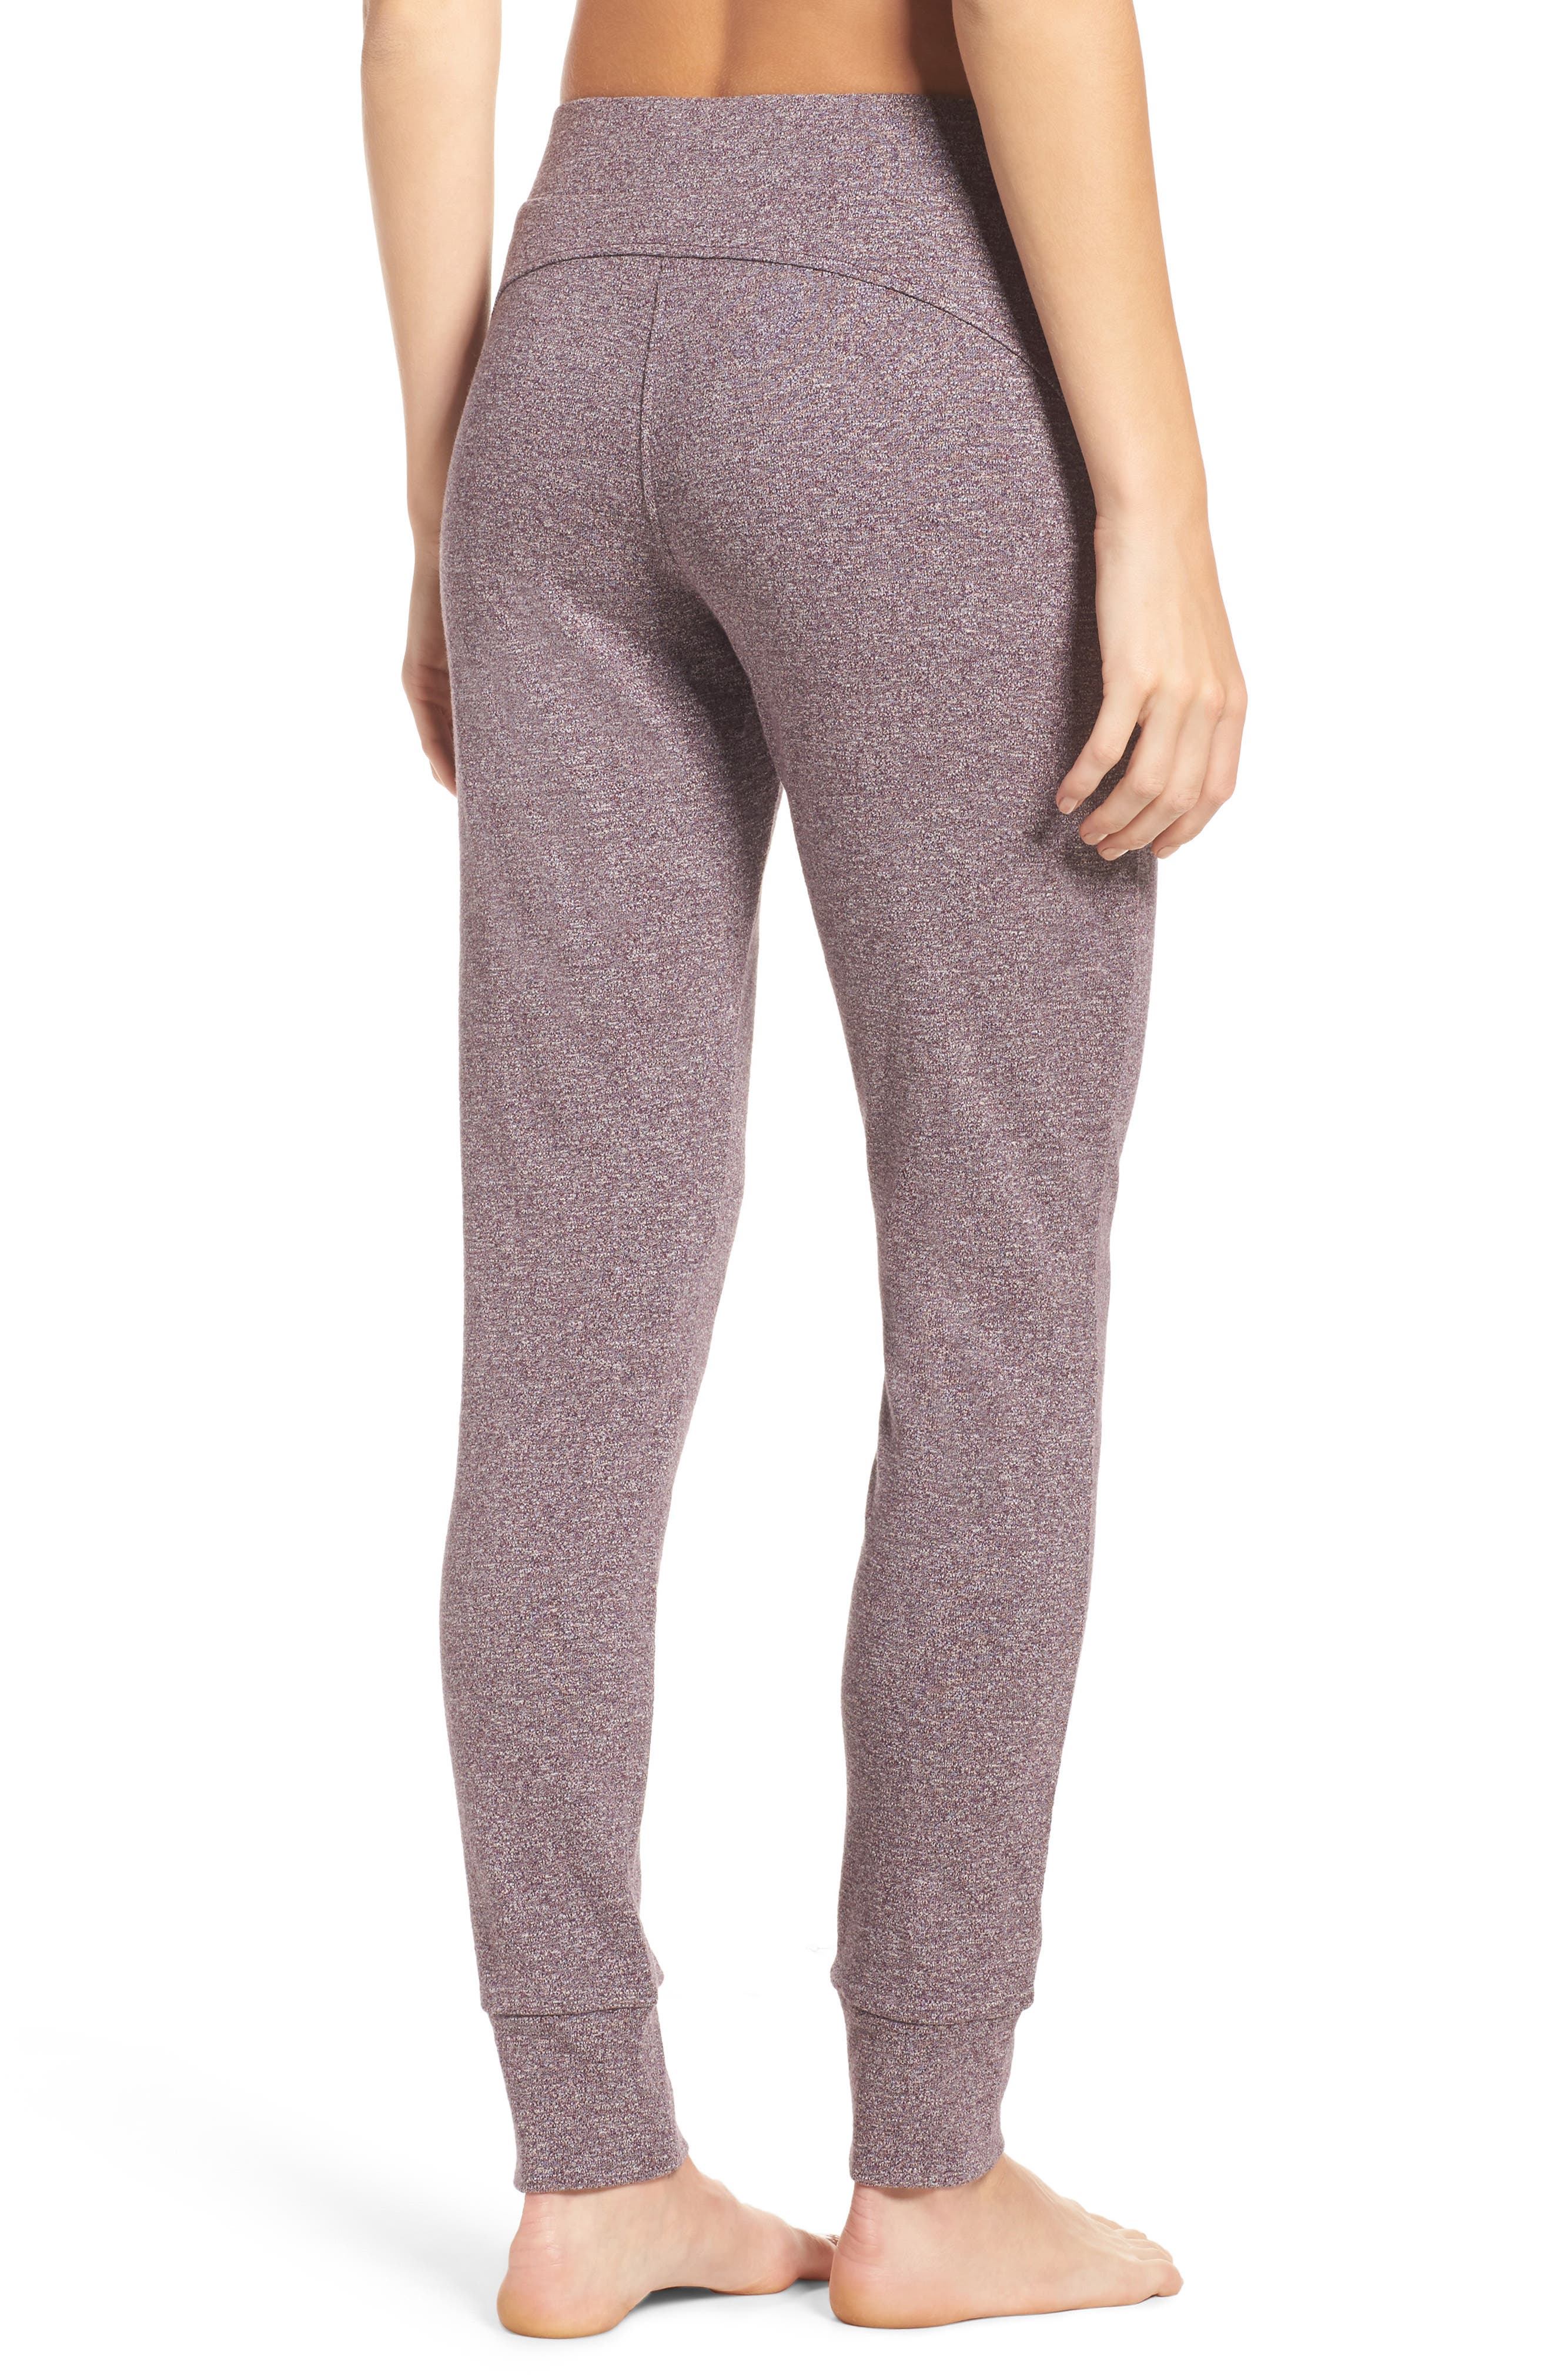 Clementine Cotton Sweatpants,                             Alternate thumbnail 2, color,                             Nightshade Heather